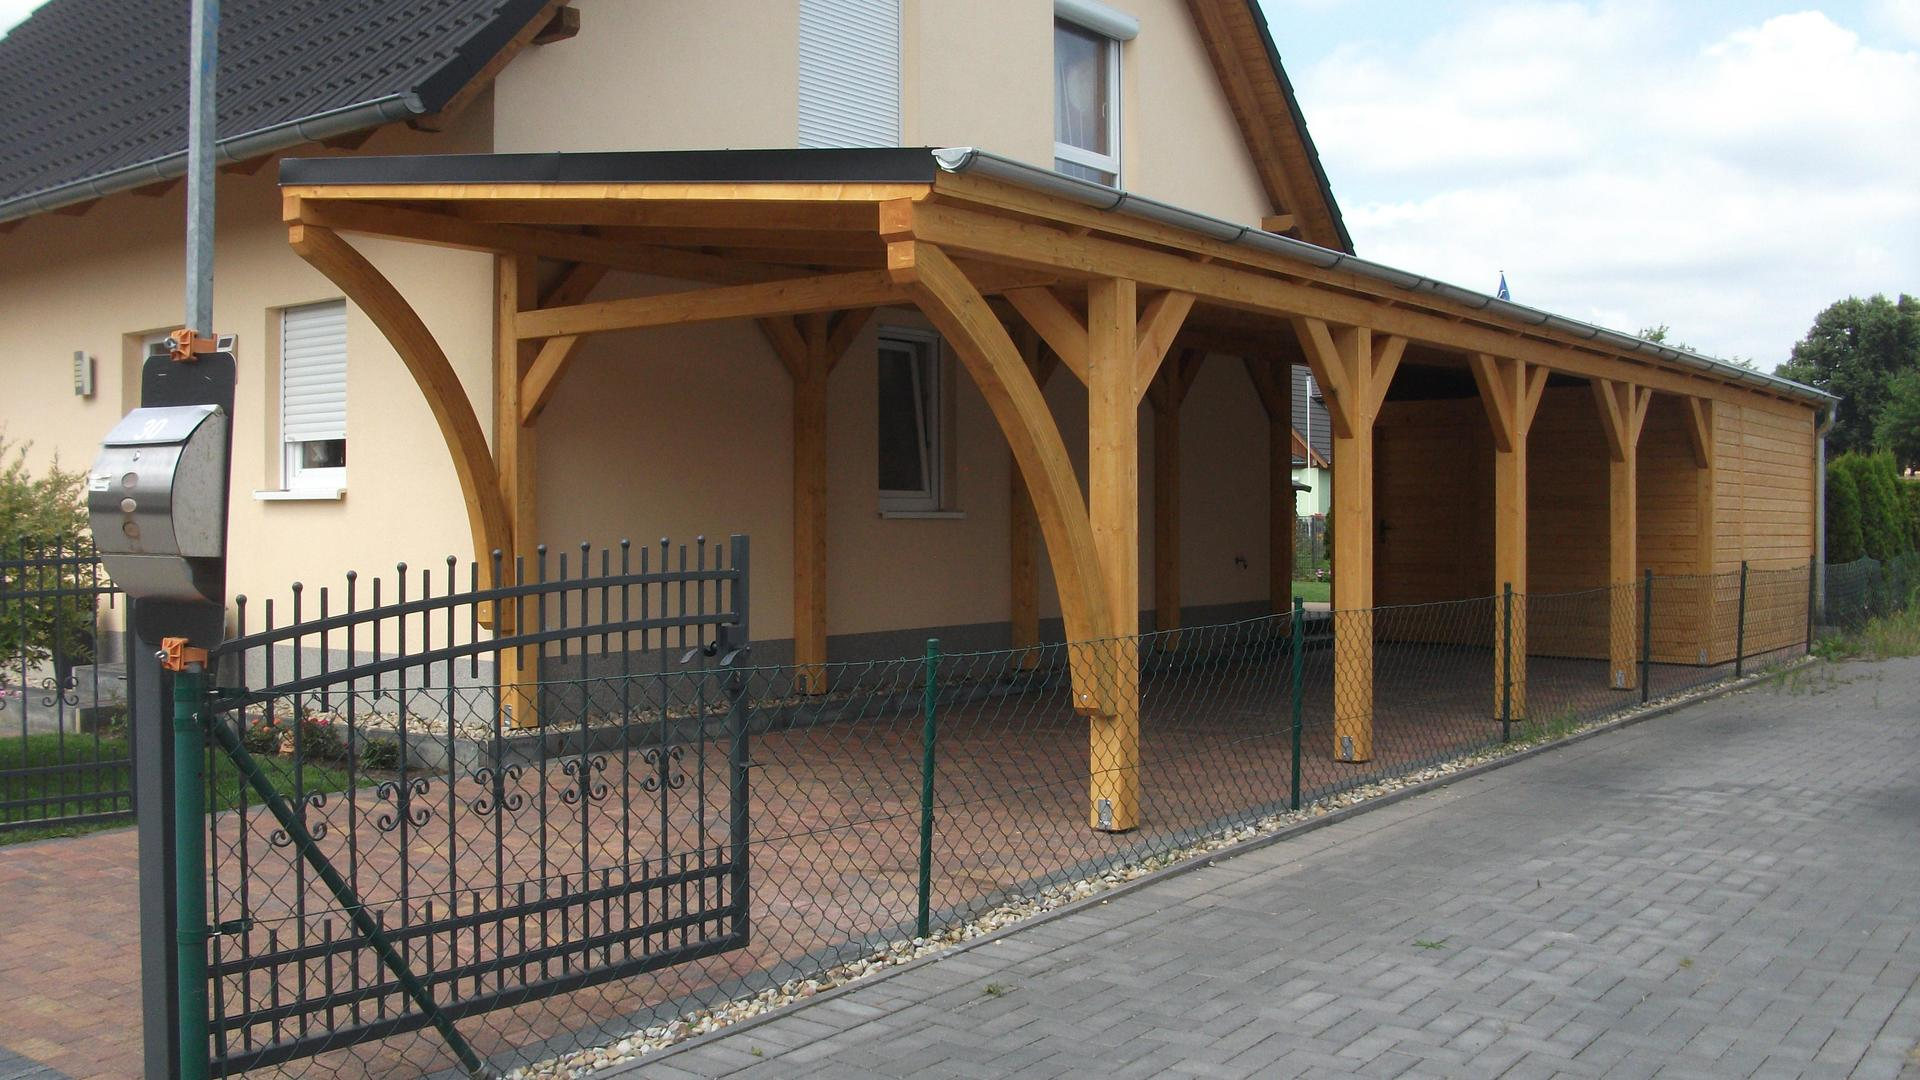 projekte carport aus polen berdachung polnische holzprodukte carport holz. Black Bedroom Furniture Sets. Home Design Ideas